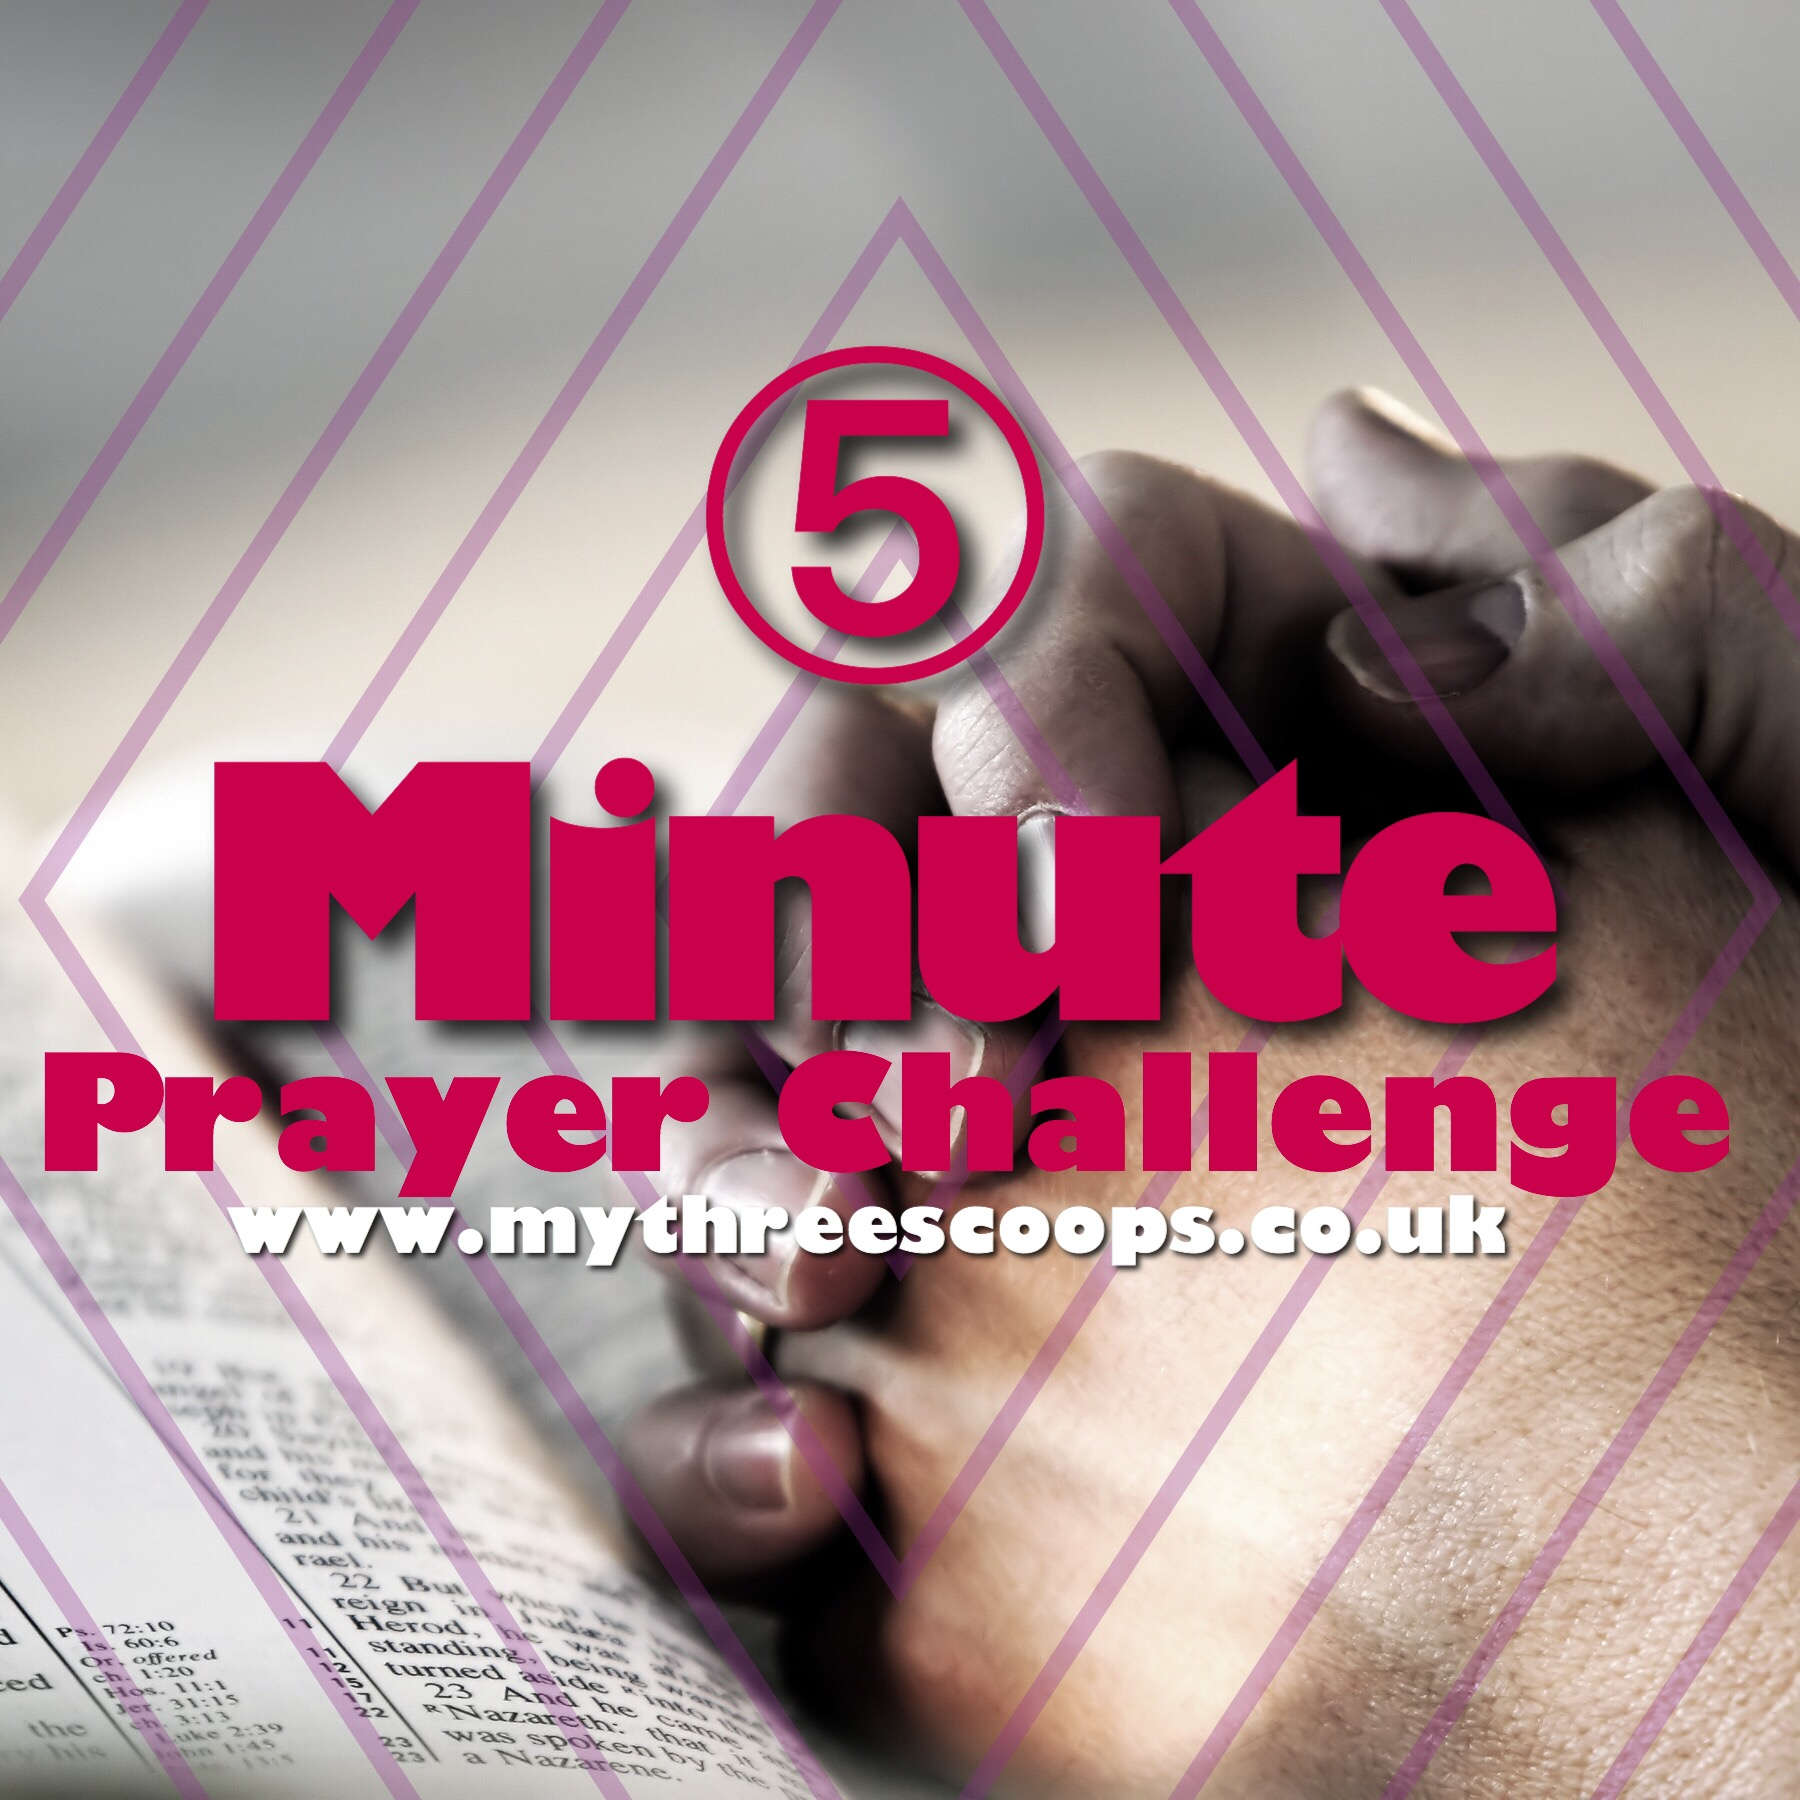 The 5 Minute Prayer Challenge